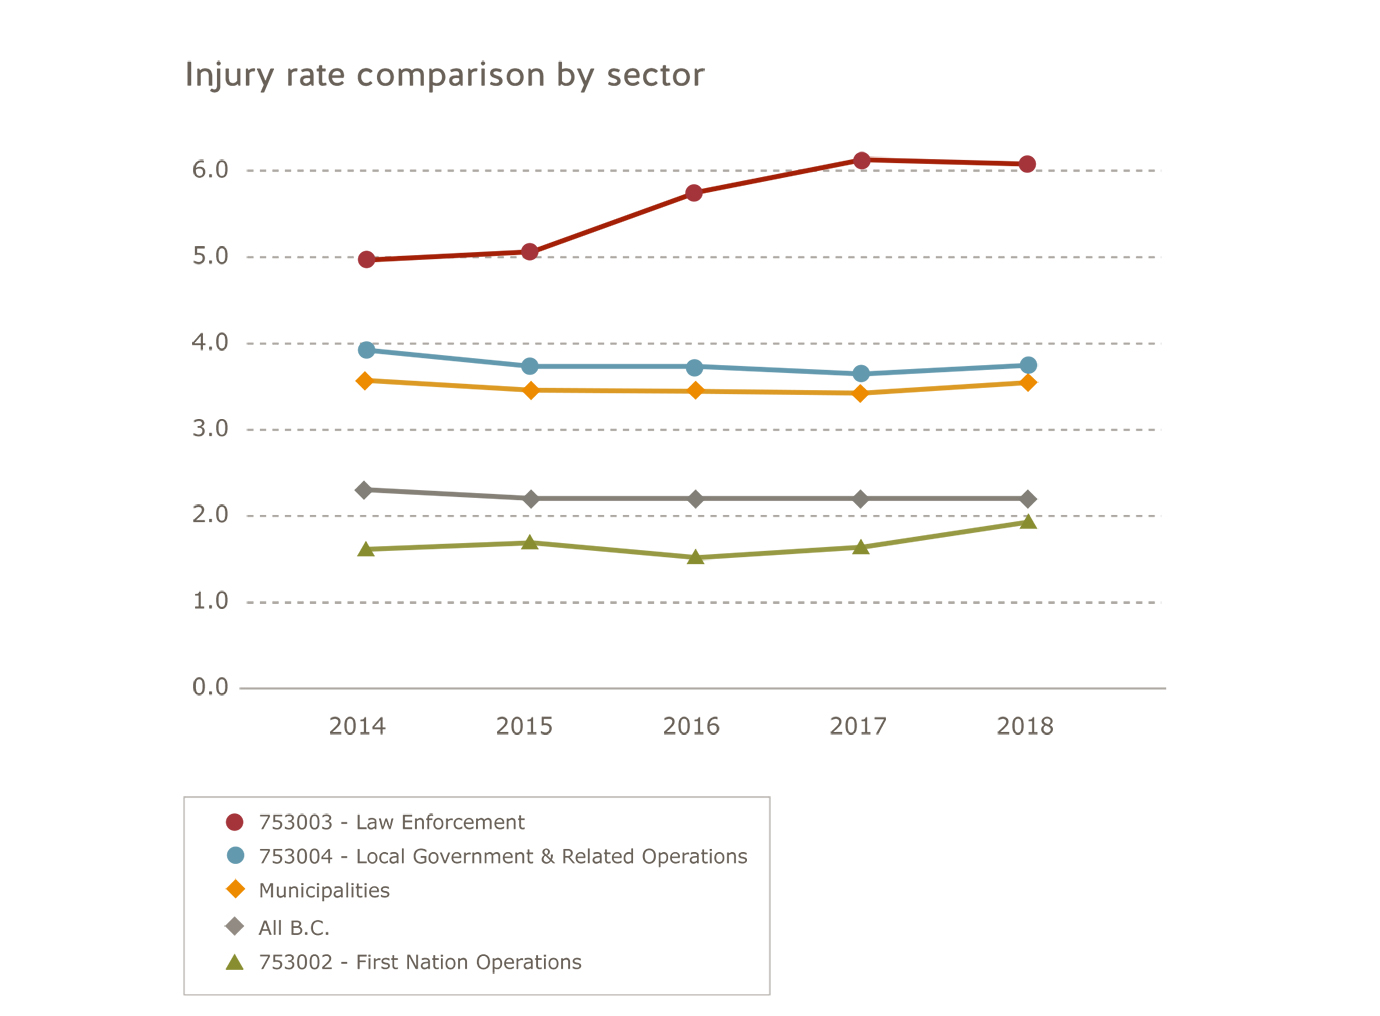 Municipalities sector injury rate comparison by sector for 2014 to 2018